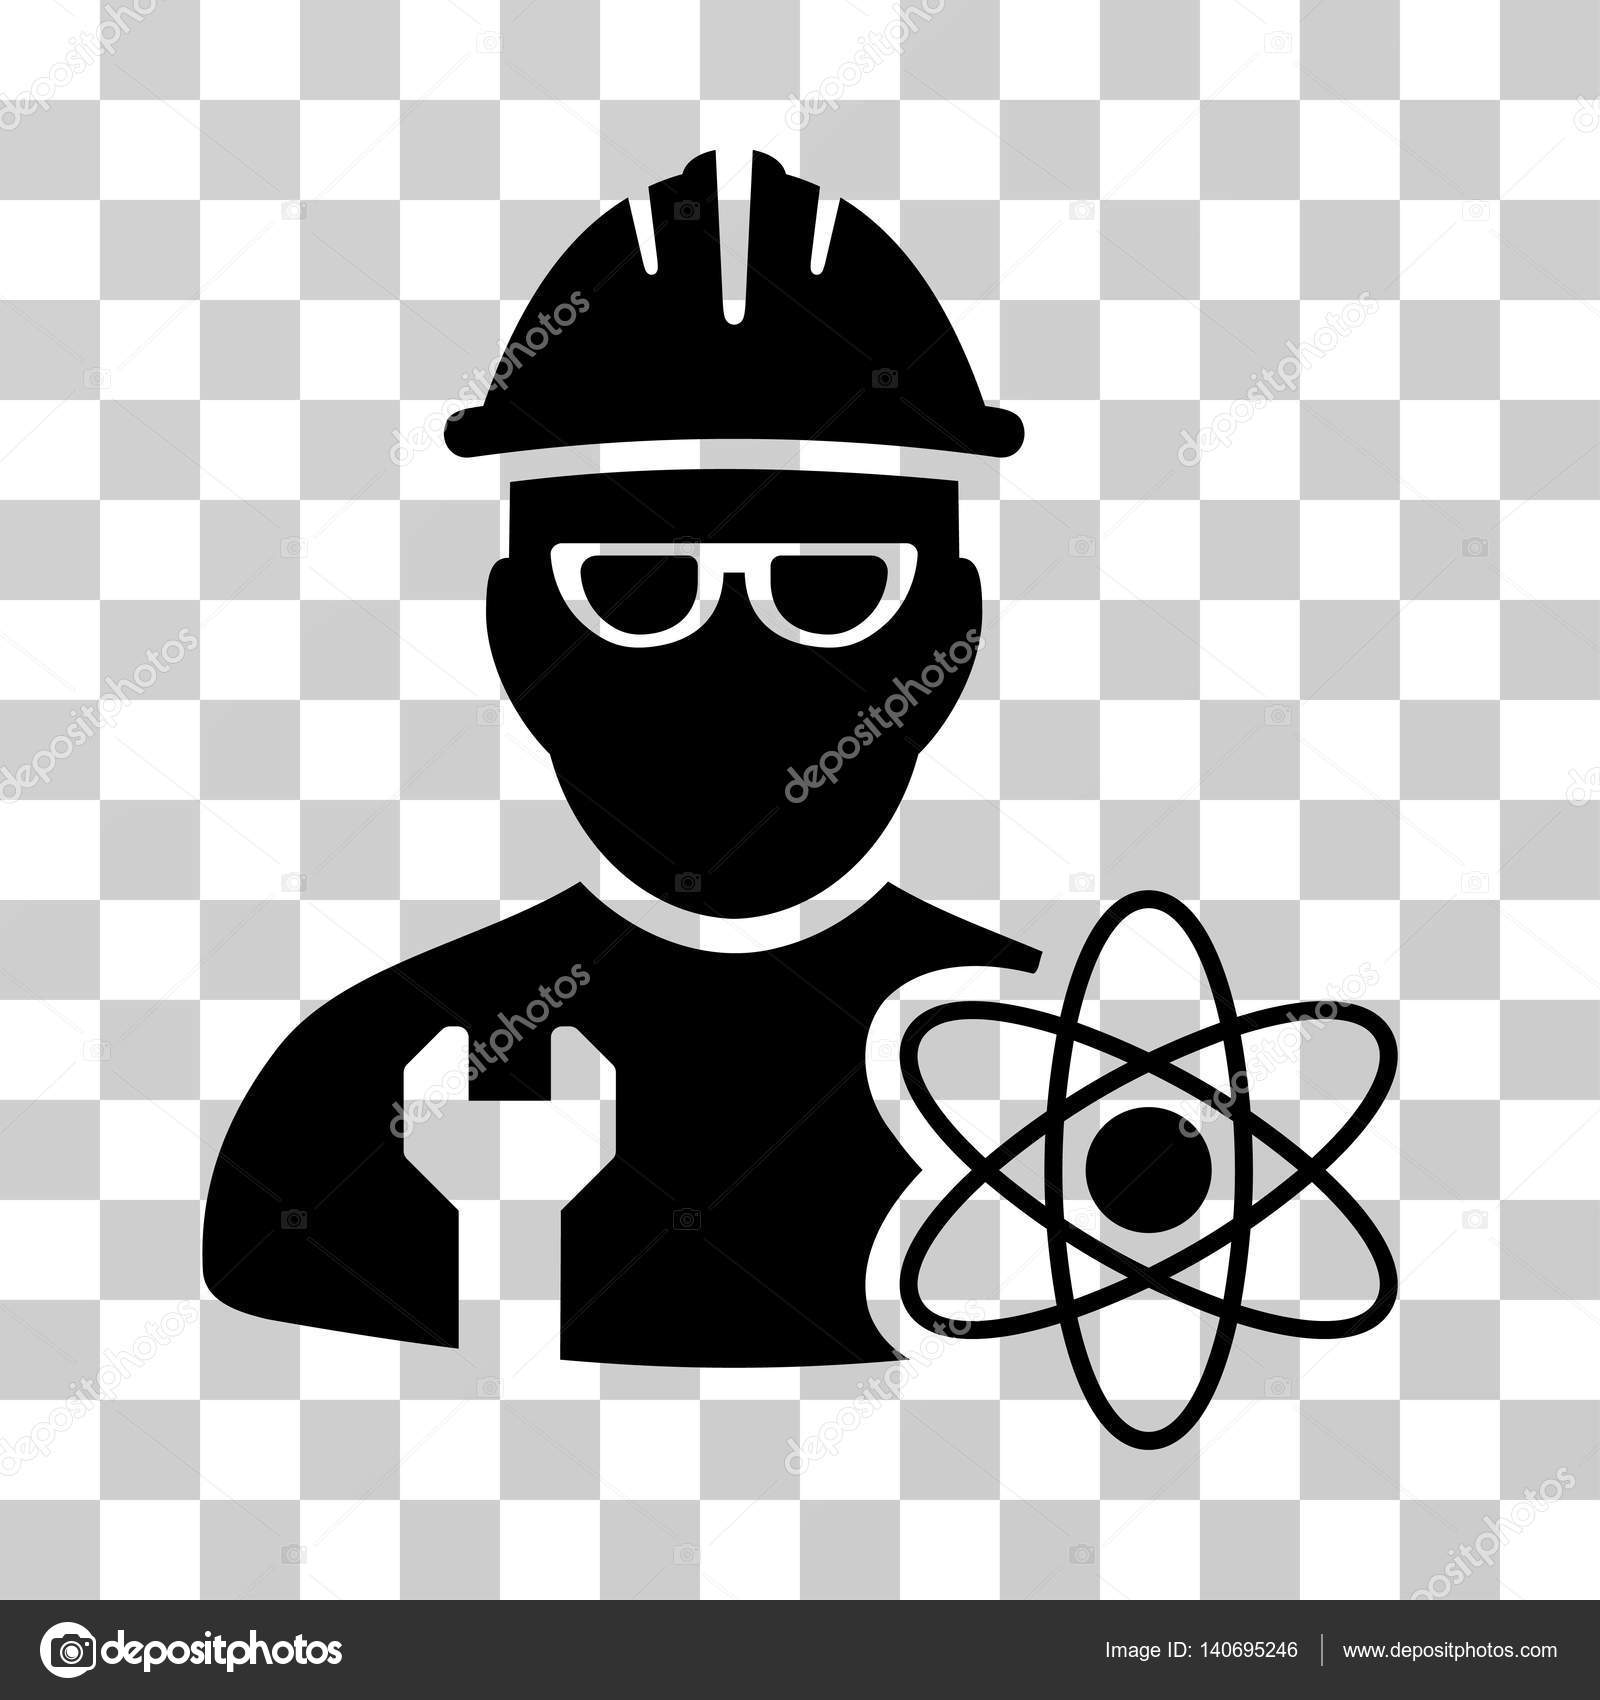 22+ Scientist Vector Black And White